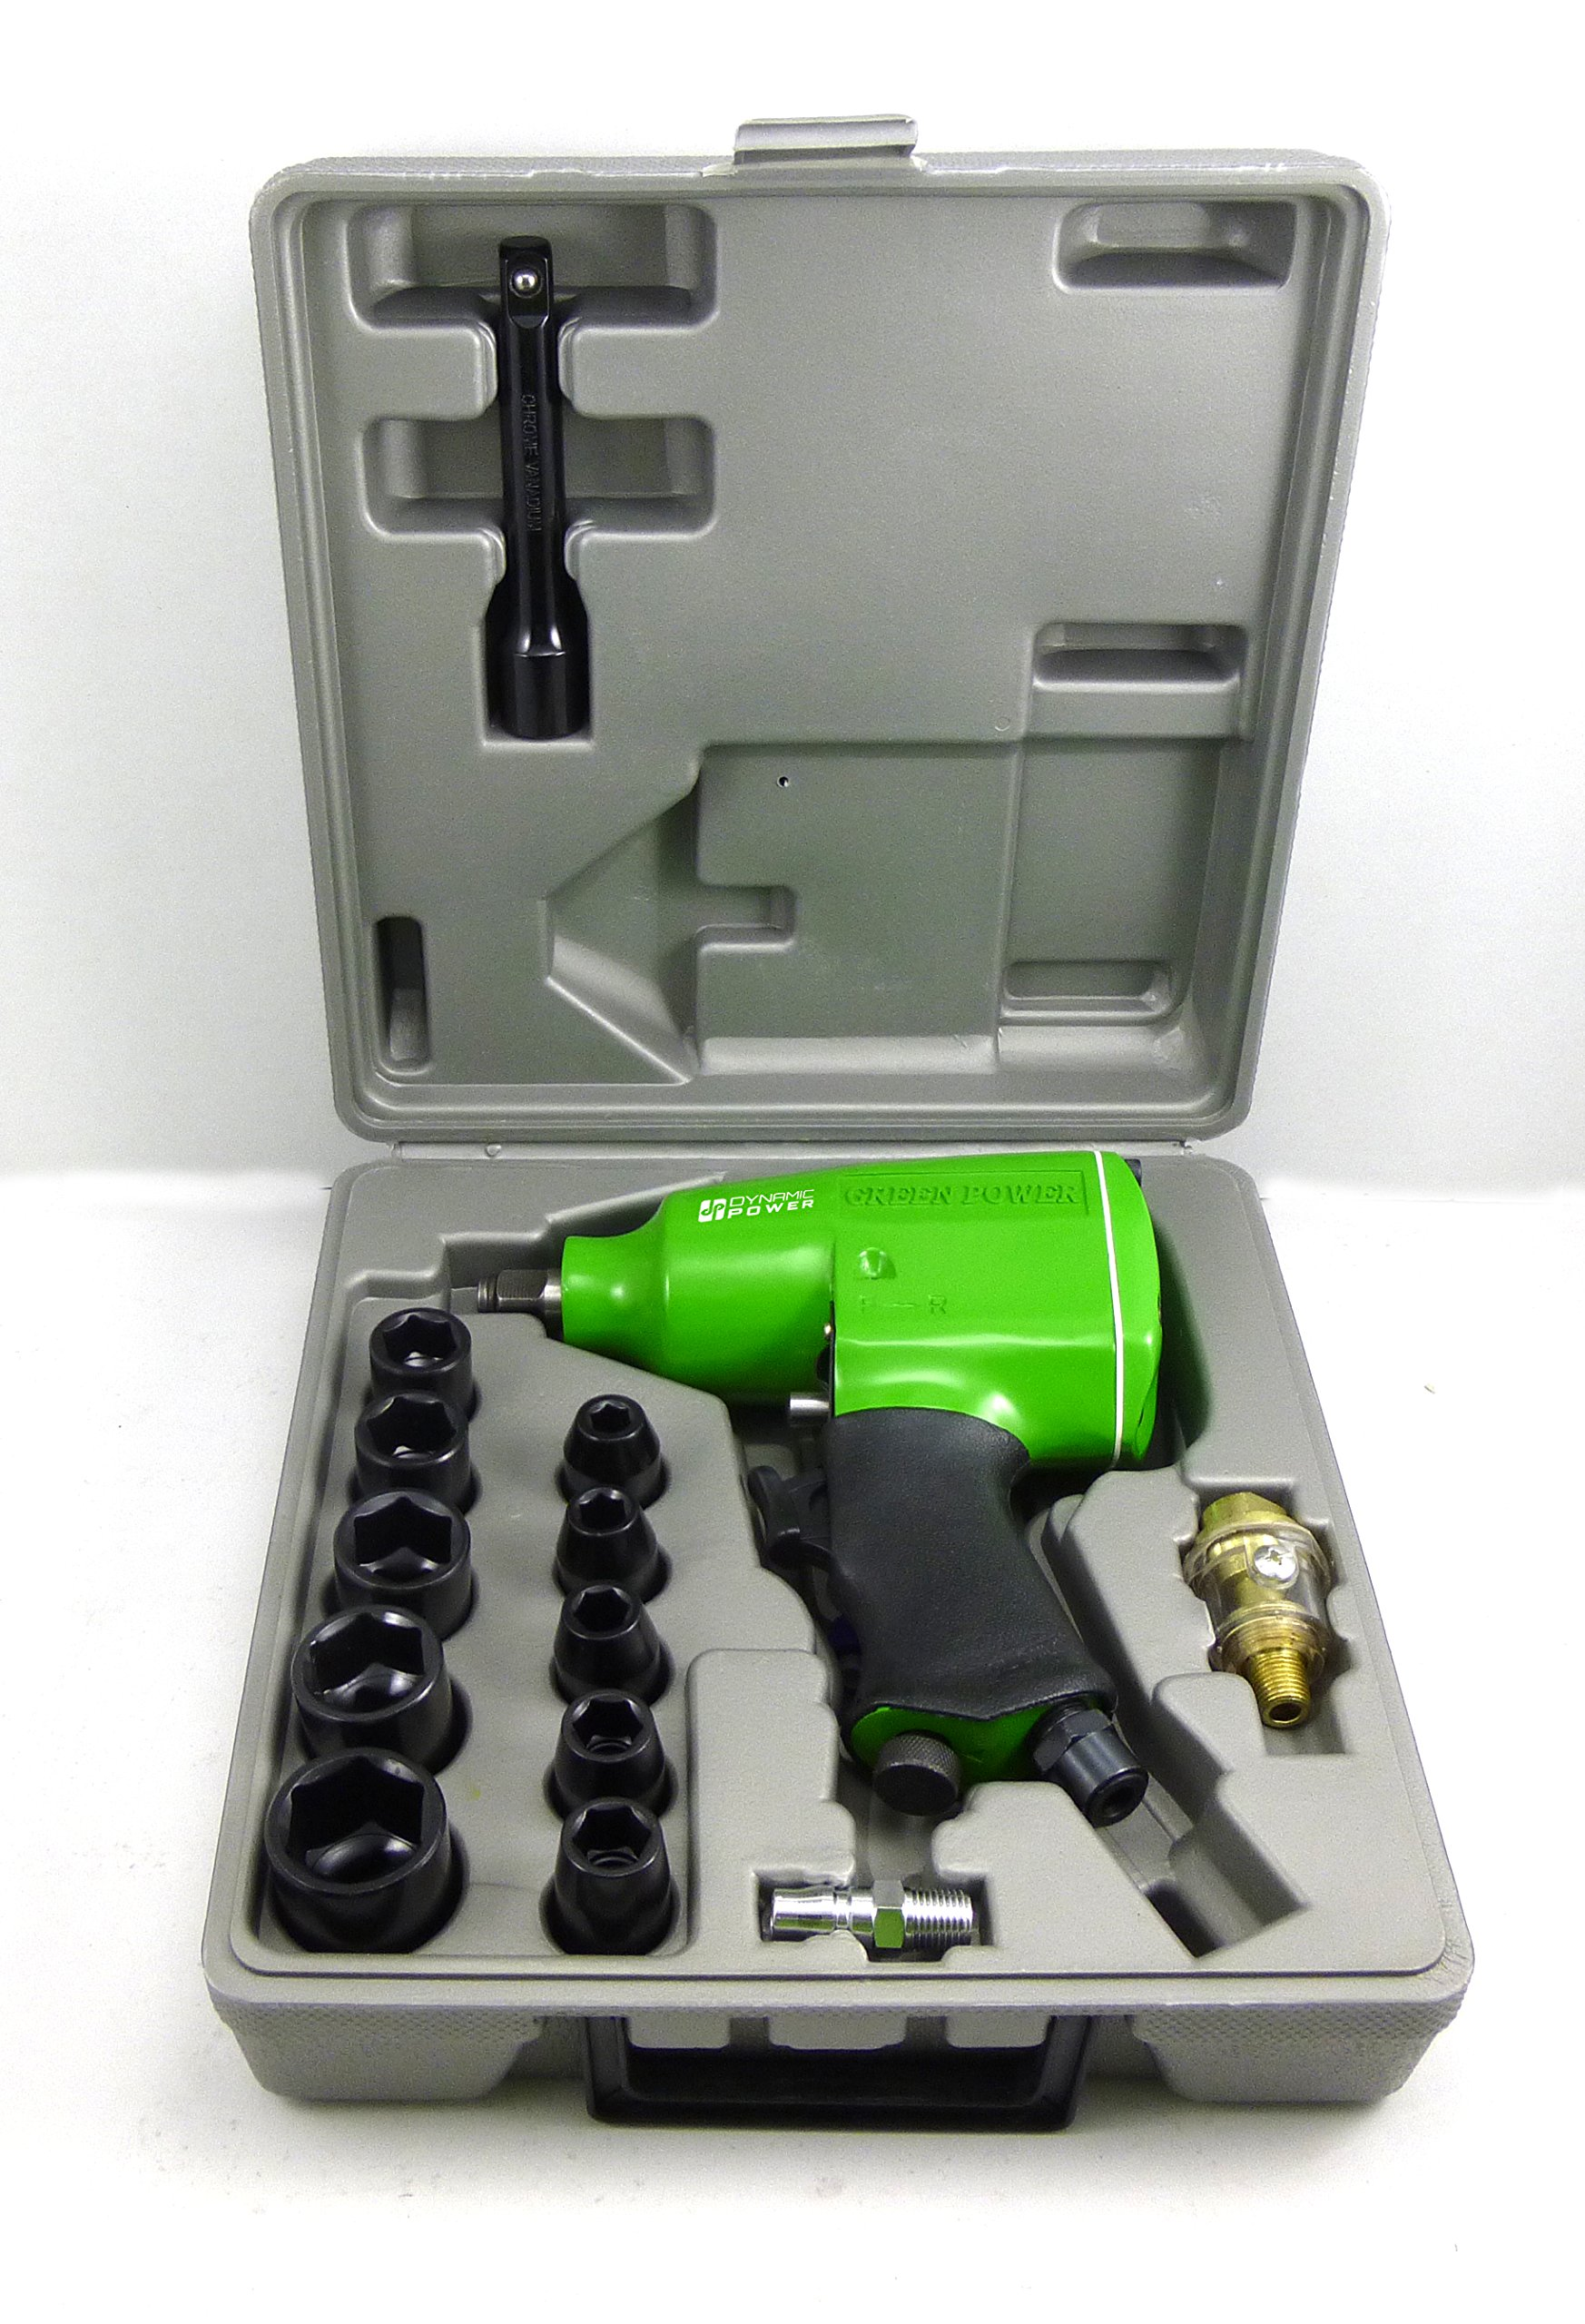 Dynamic Power 1/2'' Air Impact Wrench KIT (4 position power settings), 240ft-lb. of torque, provides power to remove most lug nuts (Rocking dog mechanism), D312126K